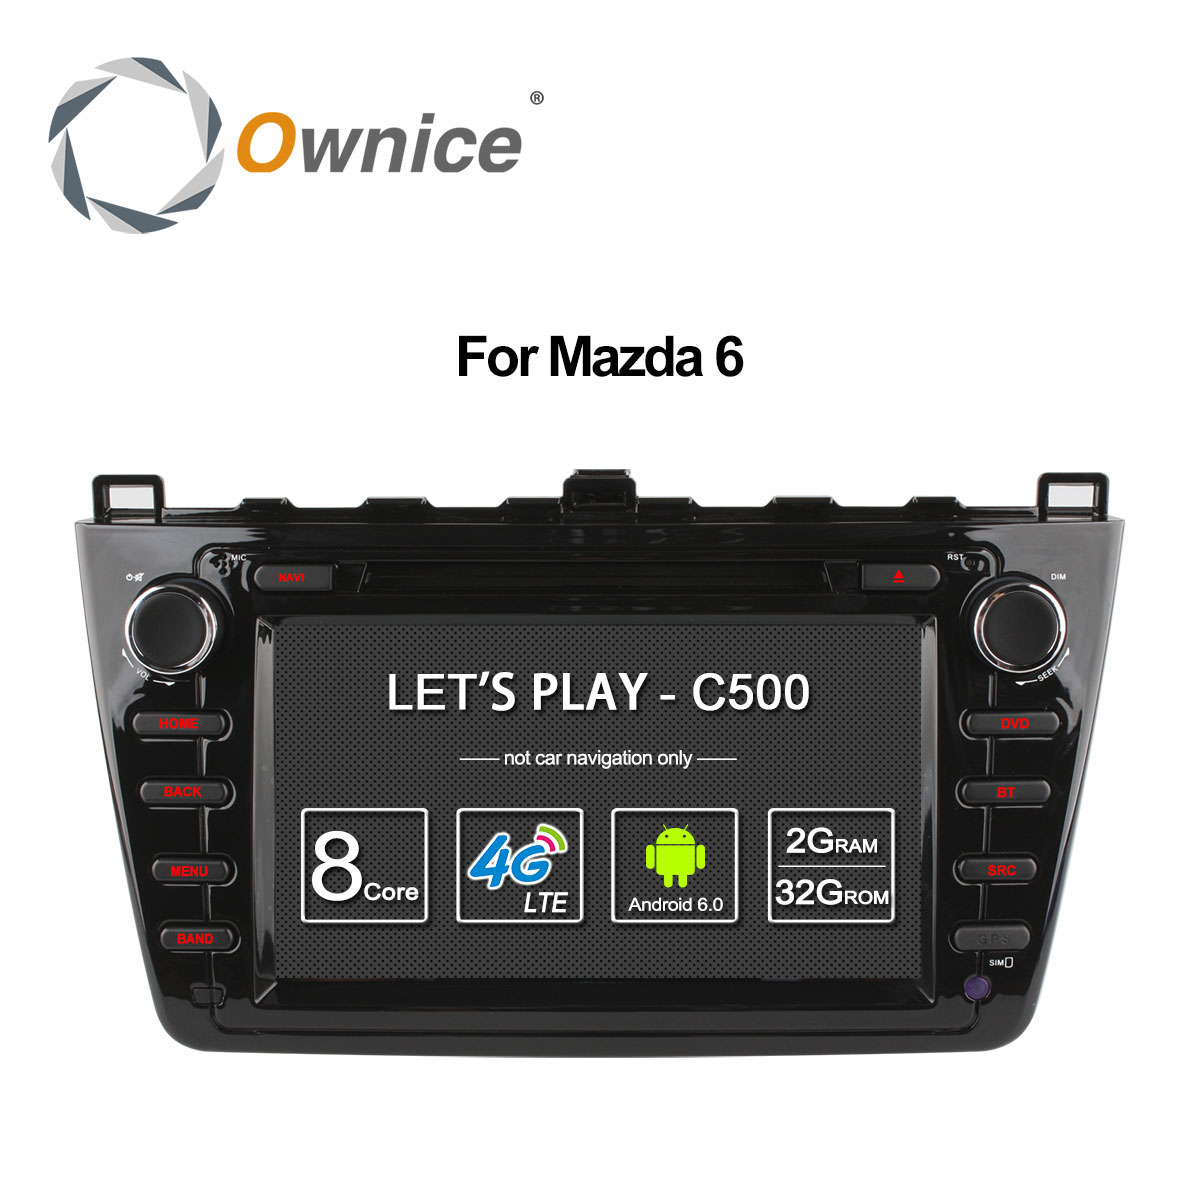 Ownice C500 Octa Core Android 6 0 car dvd gps For Mazda 6 Ruiyi Ultra 2008 aliexpress com buy ownice c500 octa core android 6 0 car dvd gps  at gsmx.co